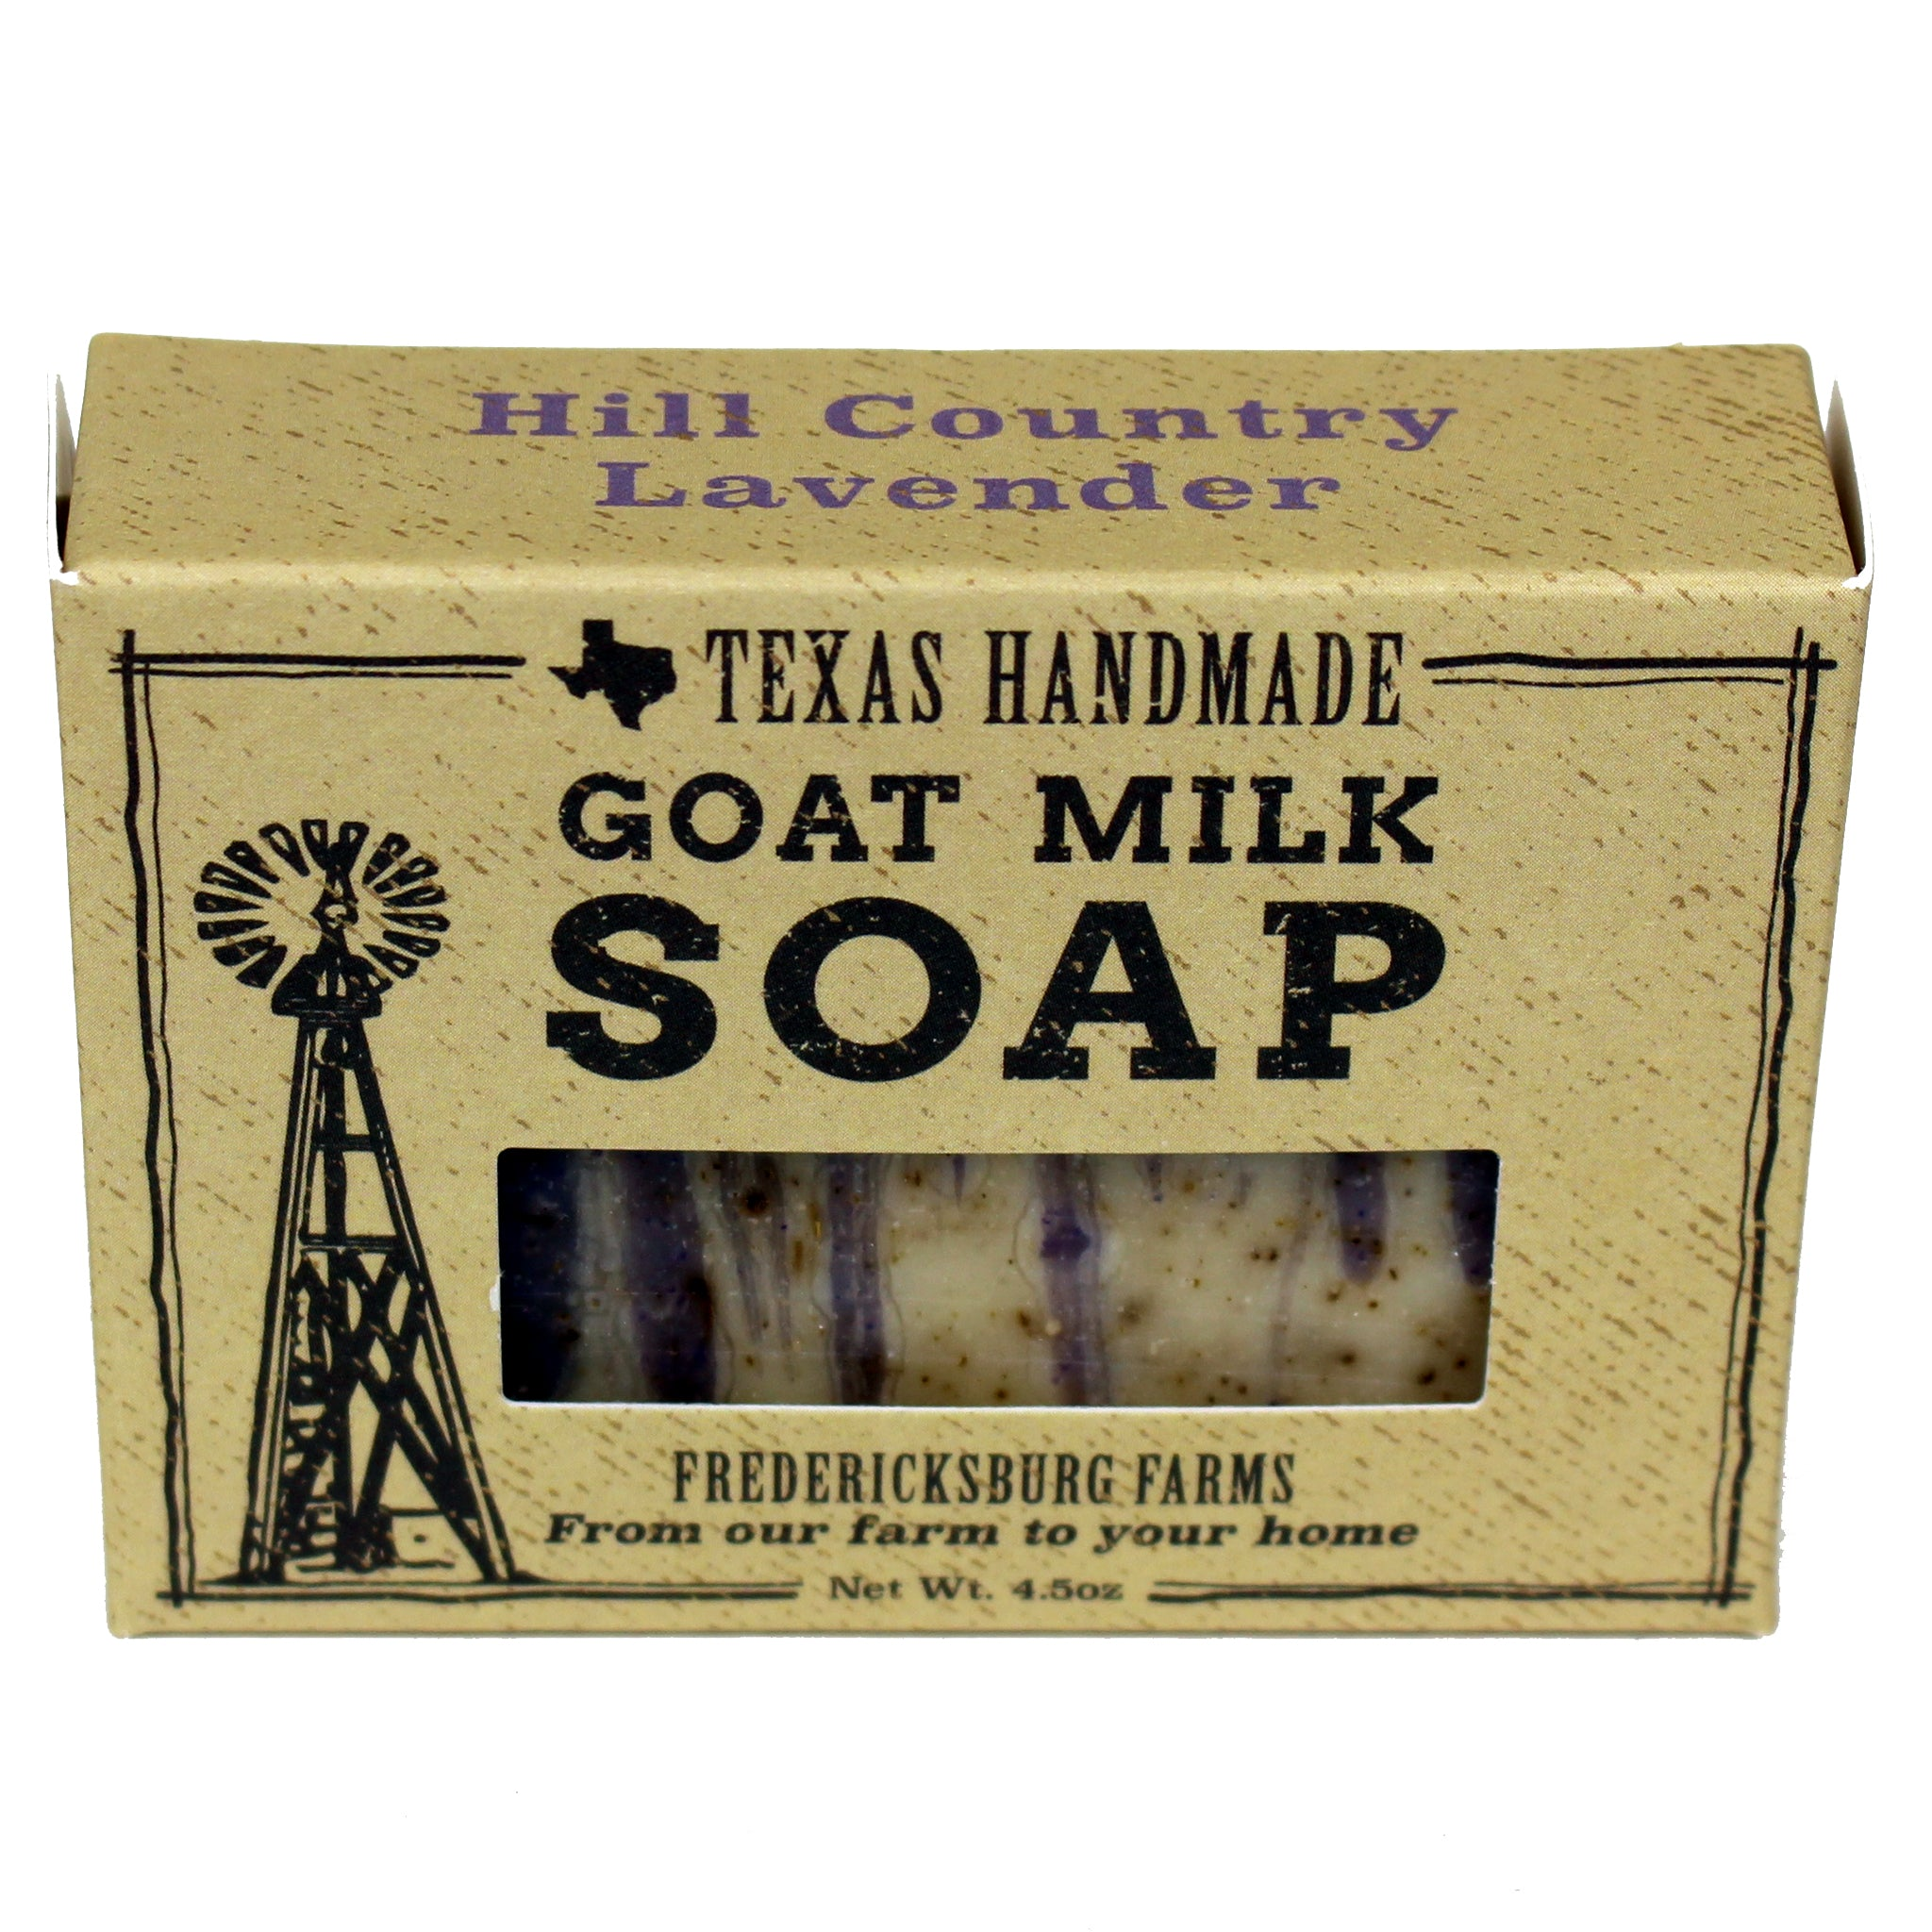 Hill Country Lavender Goat Milk Soap